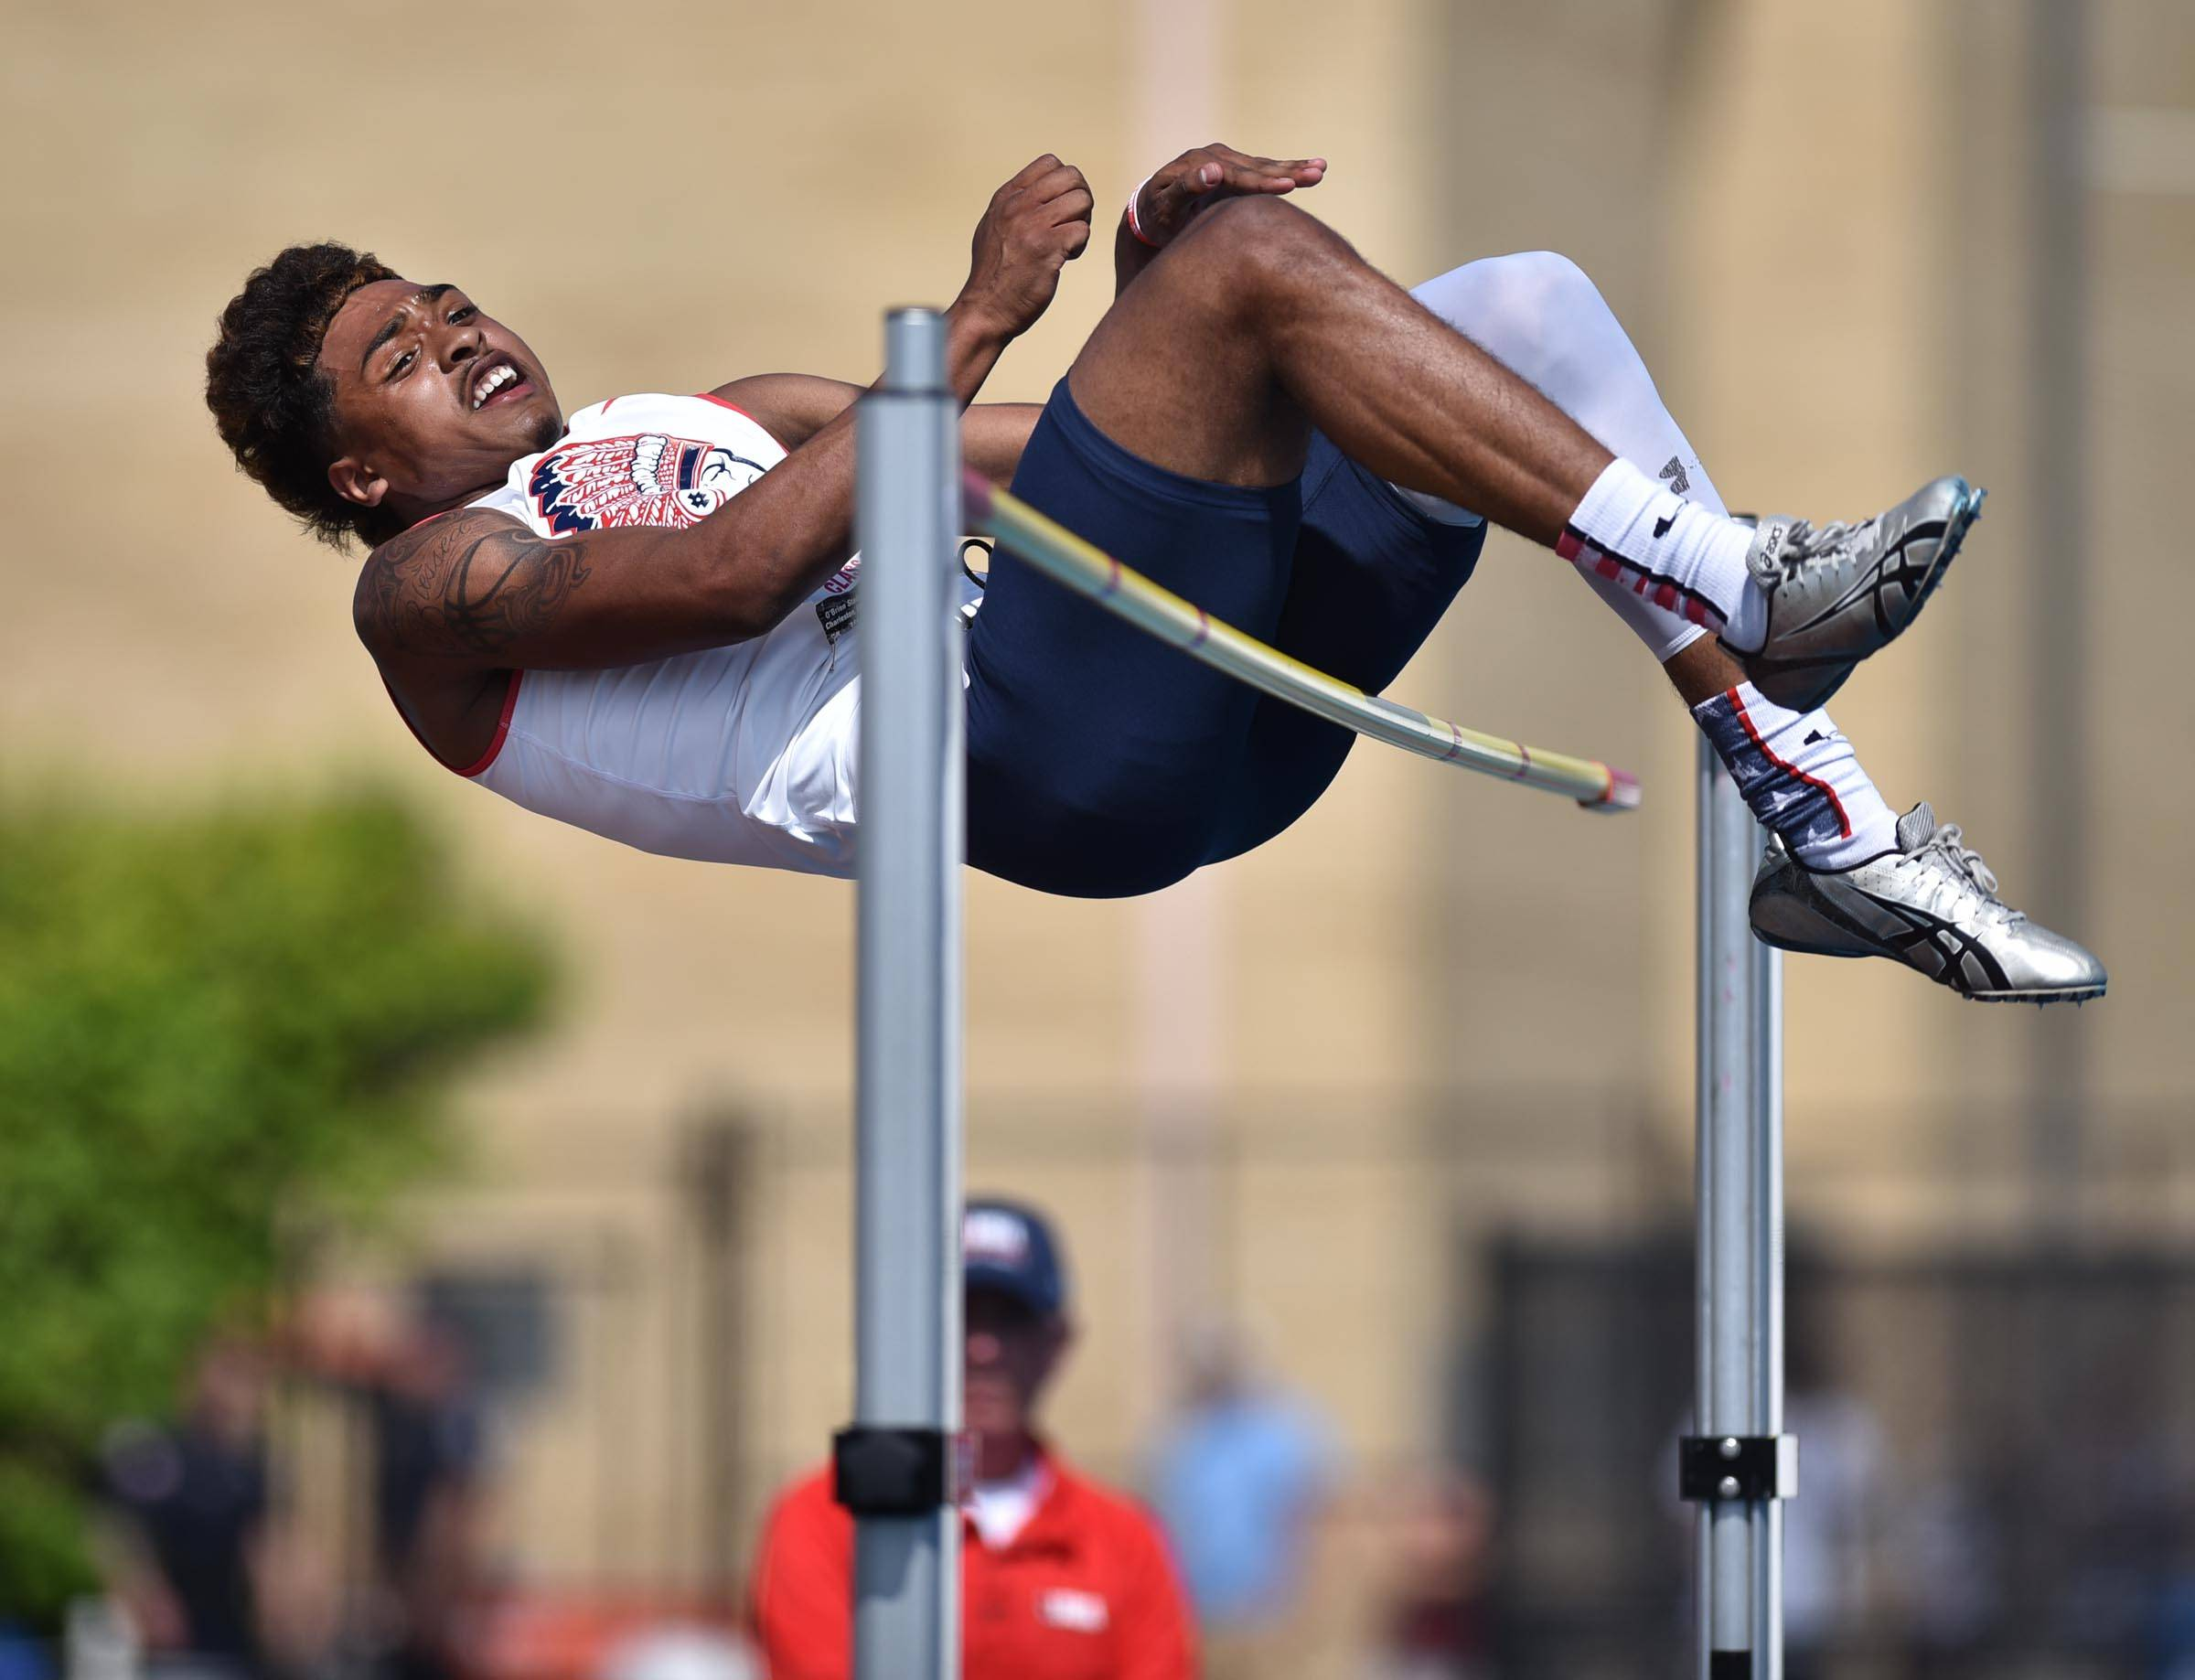 West Aurora's Camron Donatlan misses on his final attempt at 7 feet in the high jump Saturday at the boys track state and field finals in O'Brien Stadium at Eastern Illinois University in Charleston. He won the event at 6 feet, 10 inches.